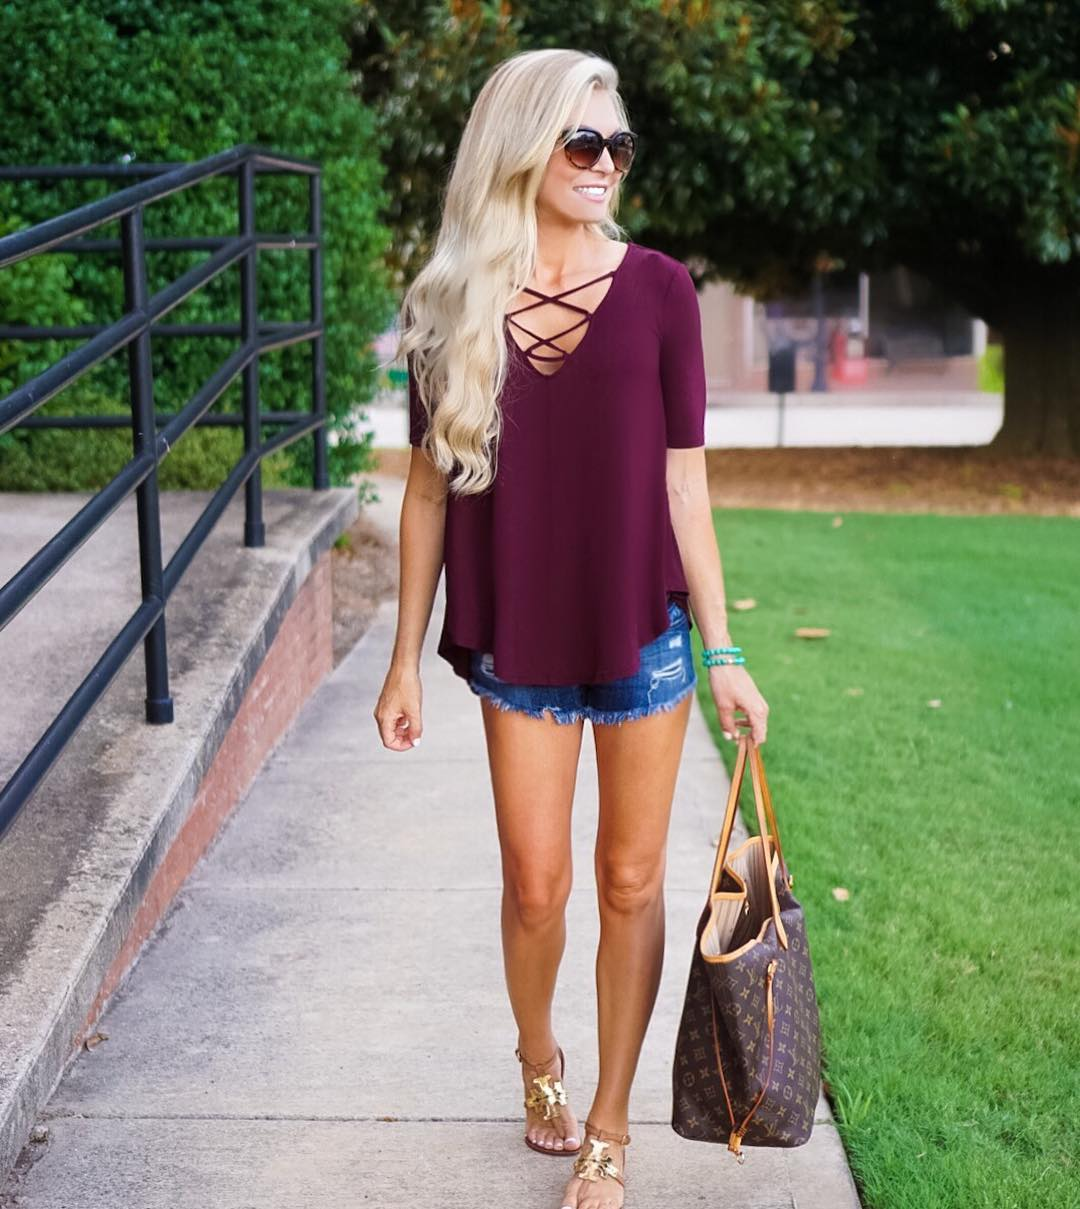 Casual dinner date with my wild woman after a FUN day on the lake! #longlivesummer http://liketk.it/2oNjt #saturdaze #momlife #wiw #ootd